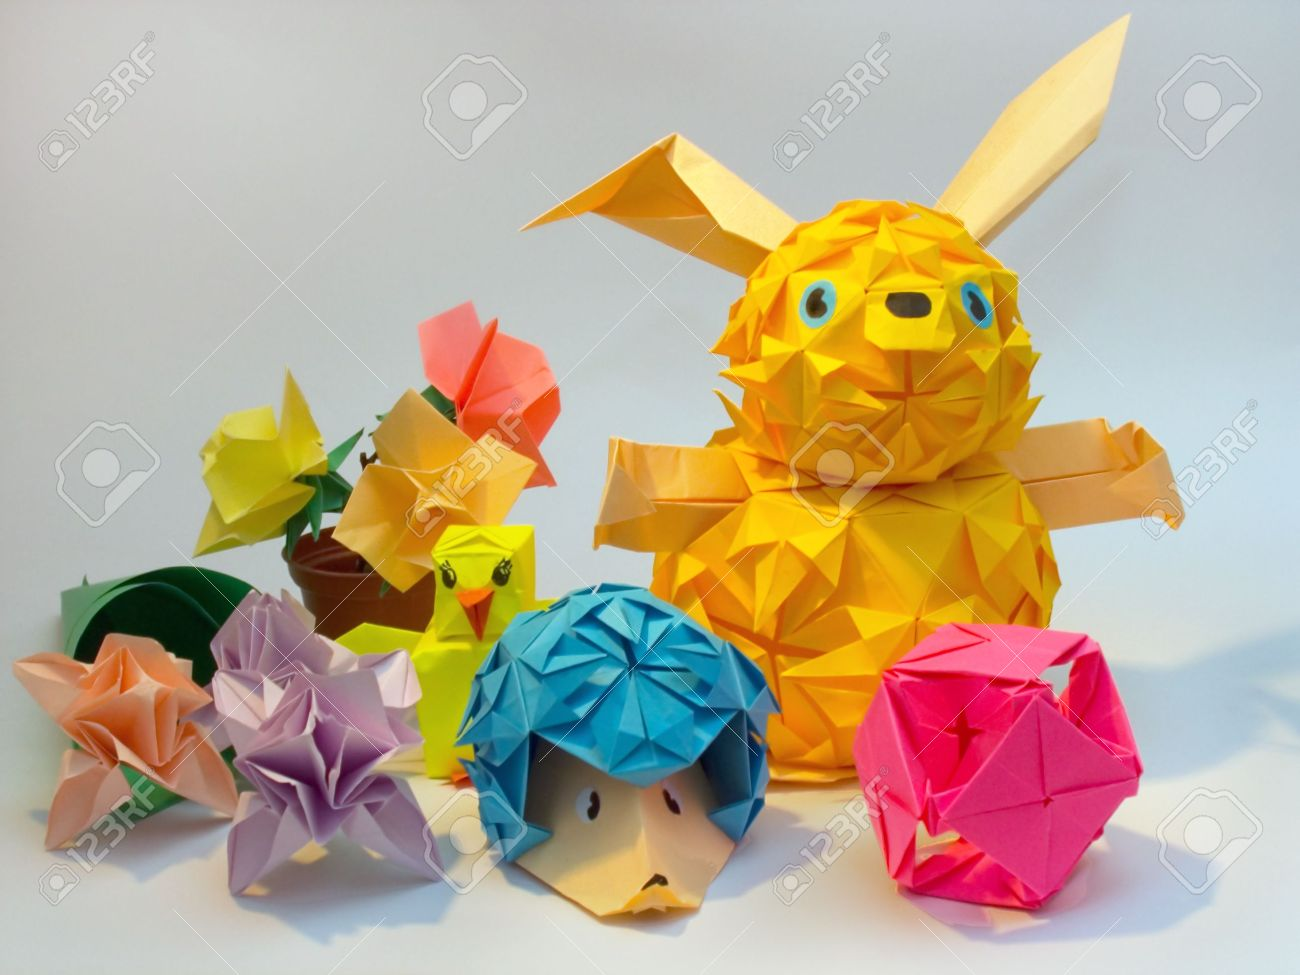 Composition of origami figures hare hedgehog flower ball stock composition of origami figures hare hedgehog flower ball stock photo mightylinksfo